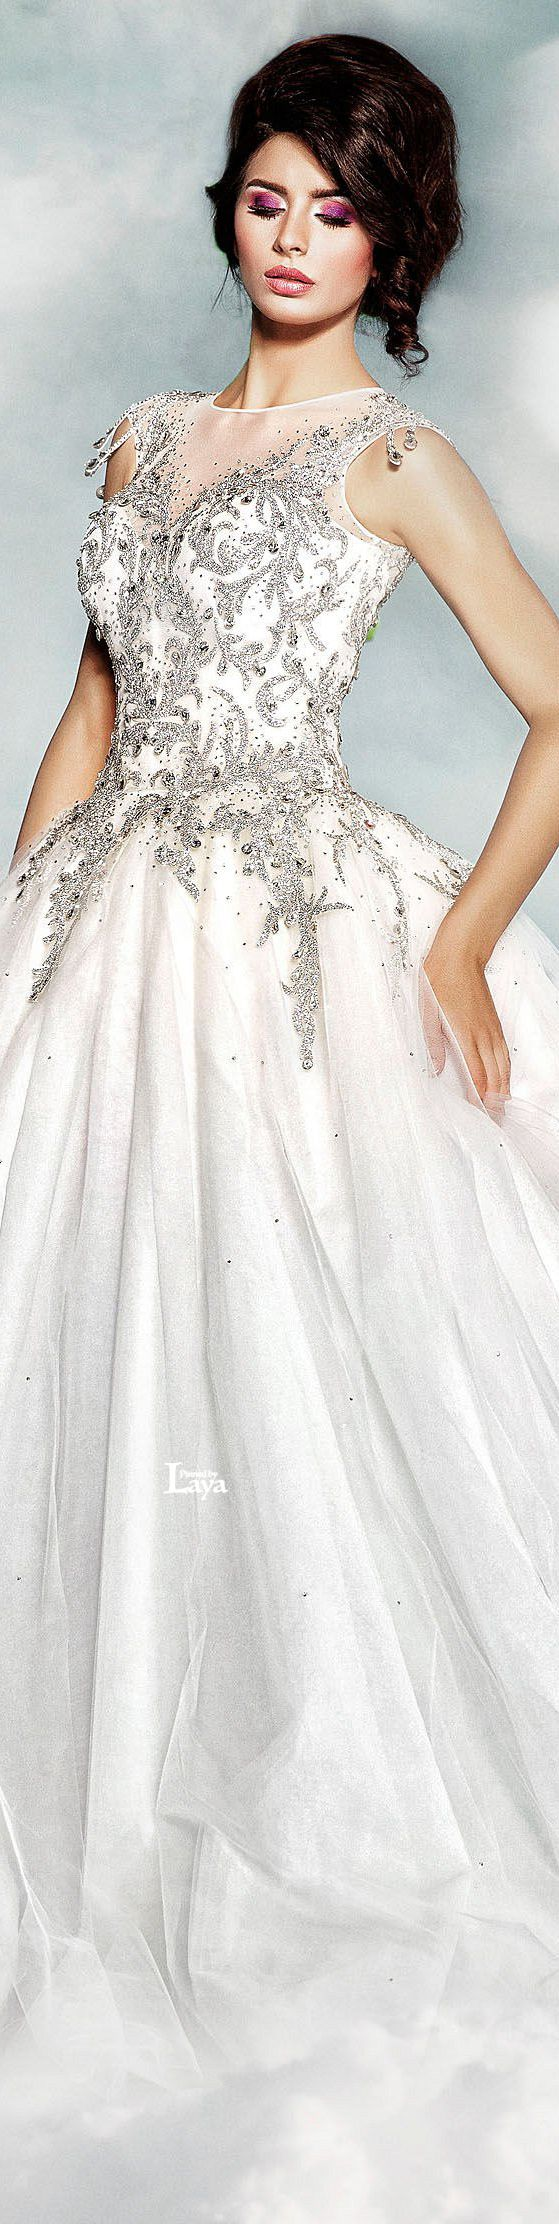 Wedding dresses, plus size, bridal underwear, shoes, tights and ...